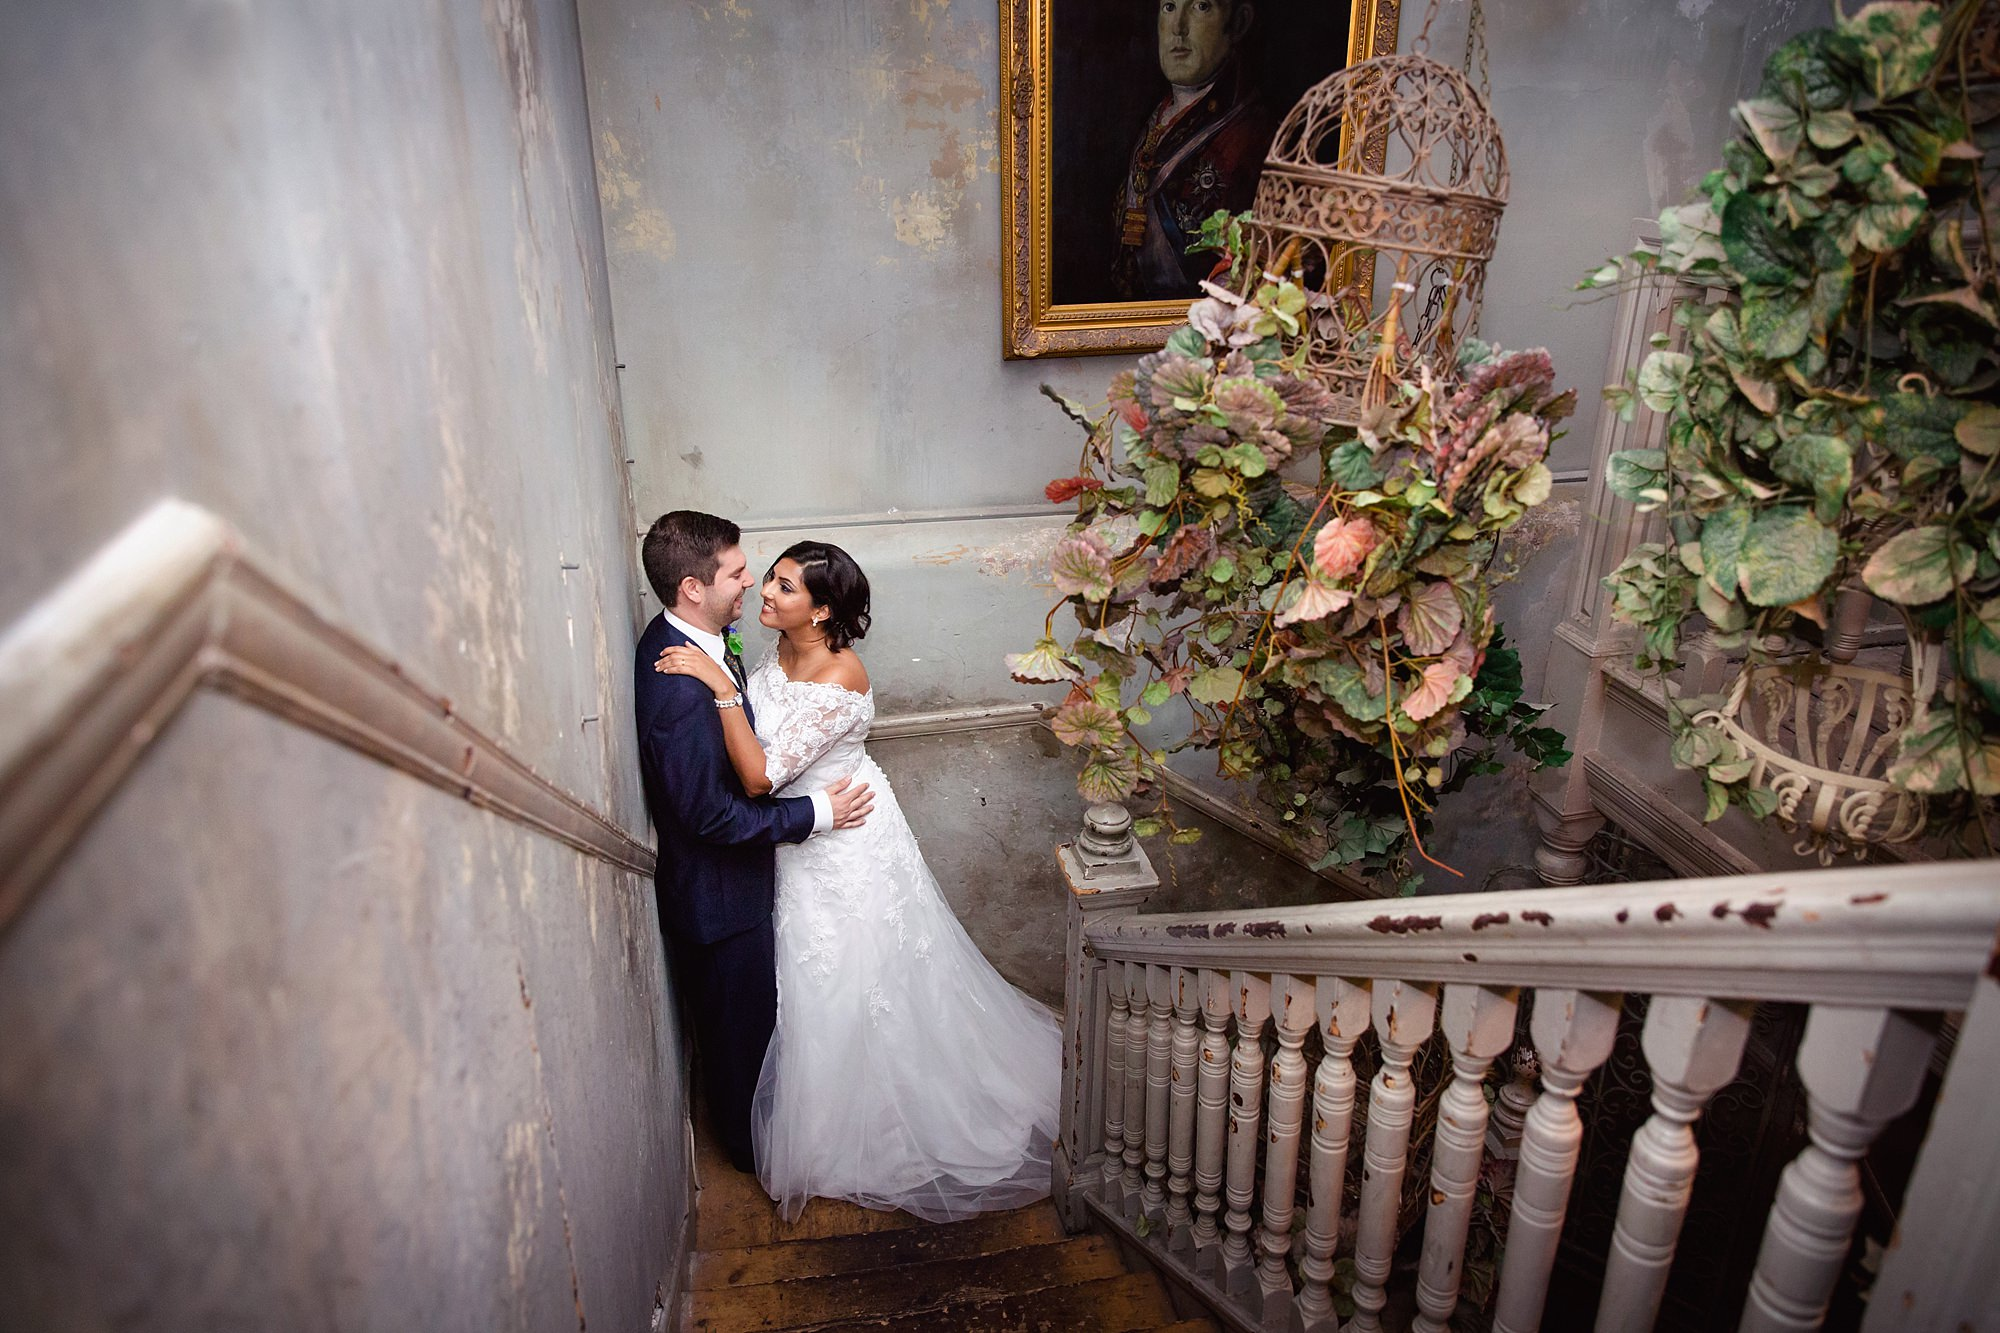 Paradise by way of Kensal Green wedding bride and groom in stairwell